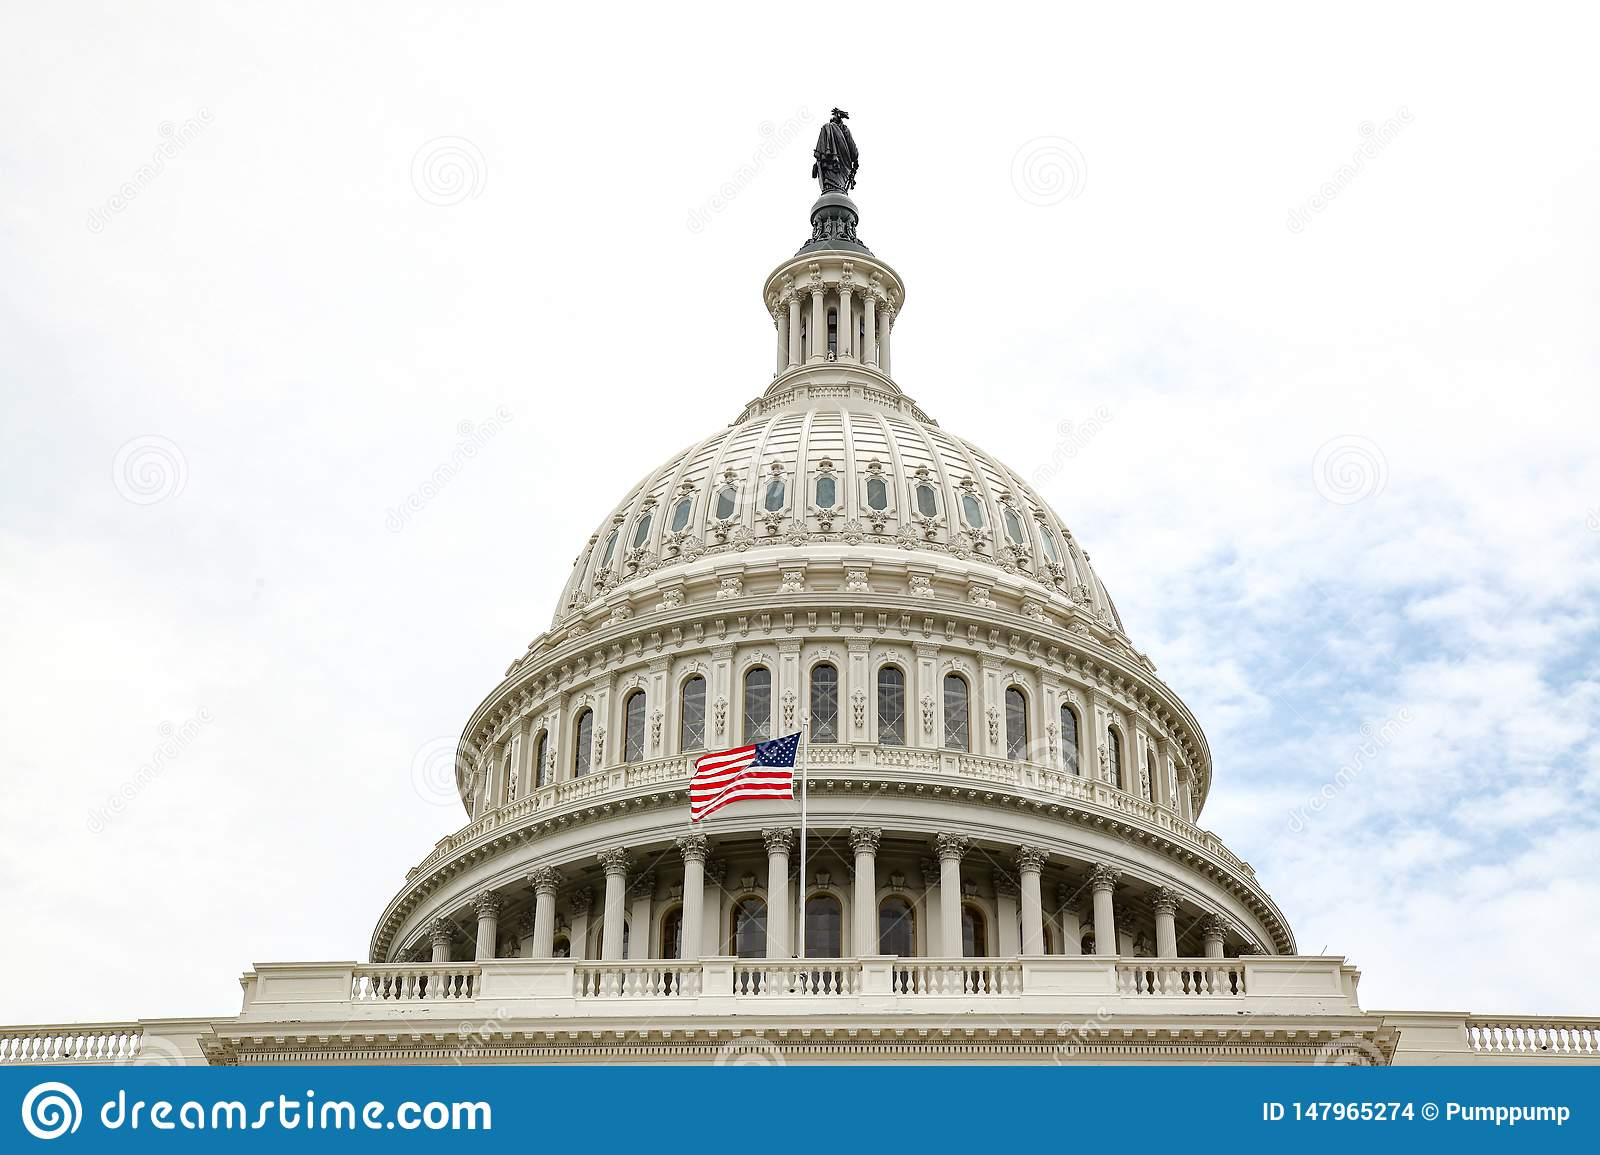 United States Capitol Building In Washington Dc Usa United States Congress Editorial Stock Image Image Of Dome Symbol 147965274